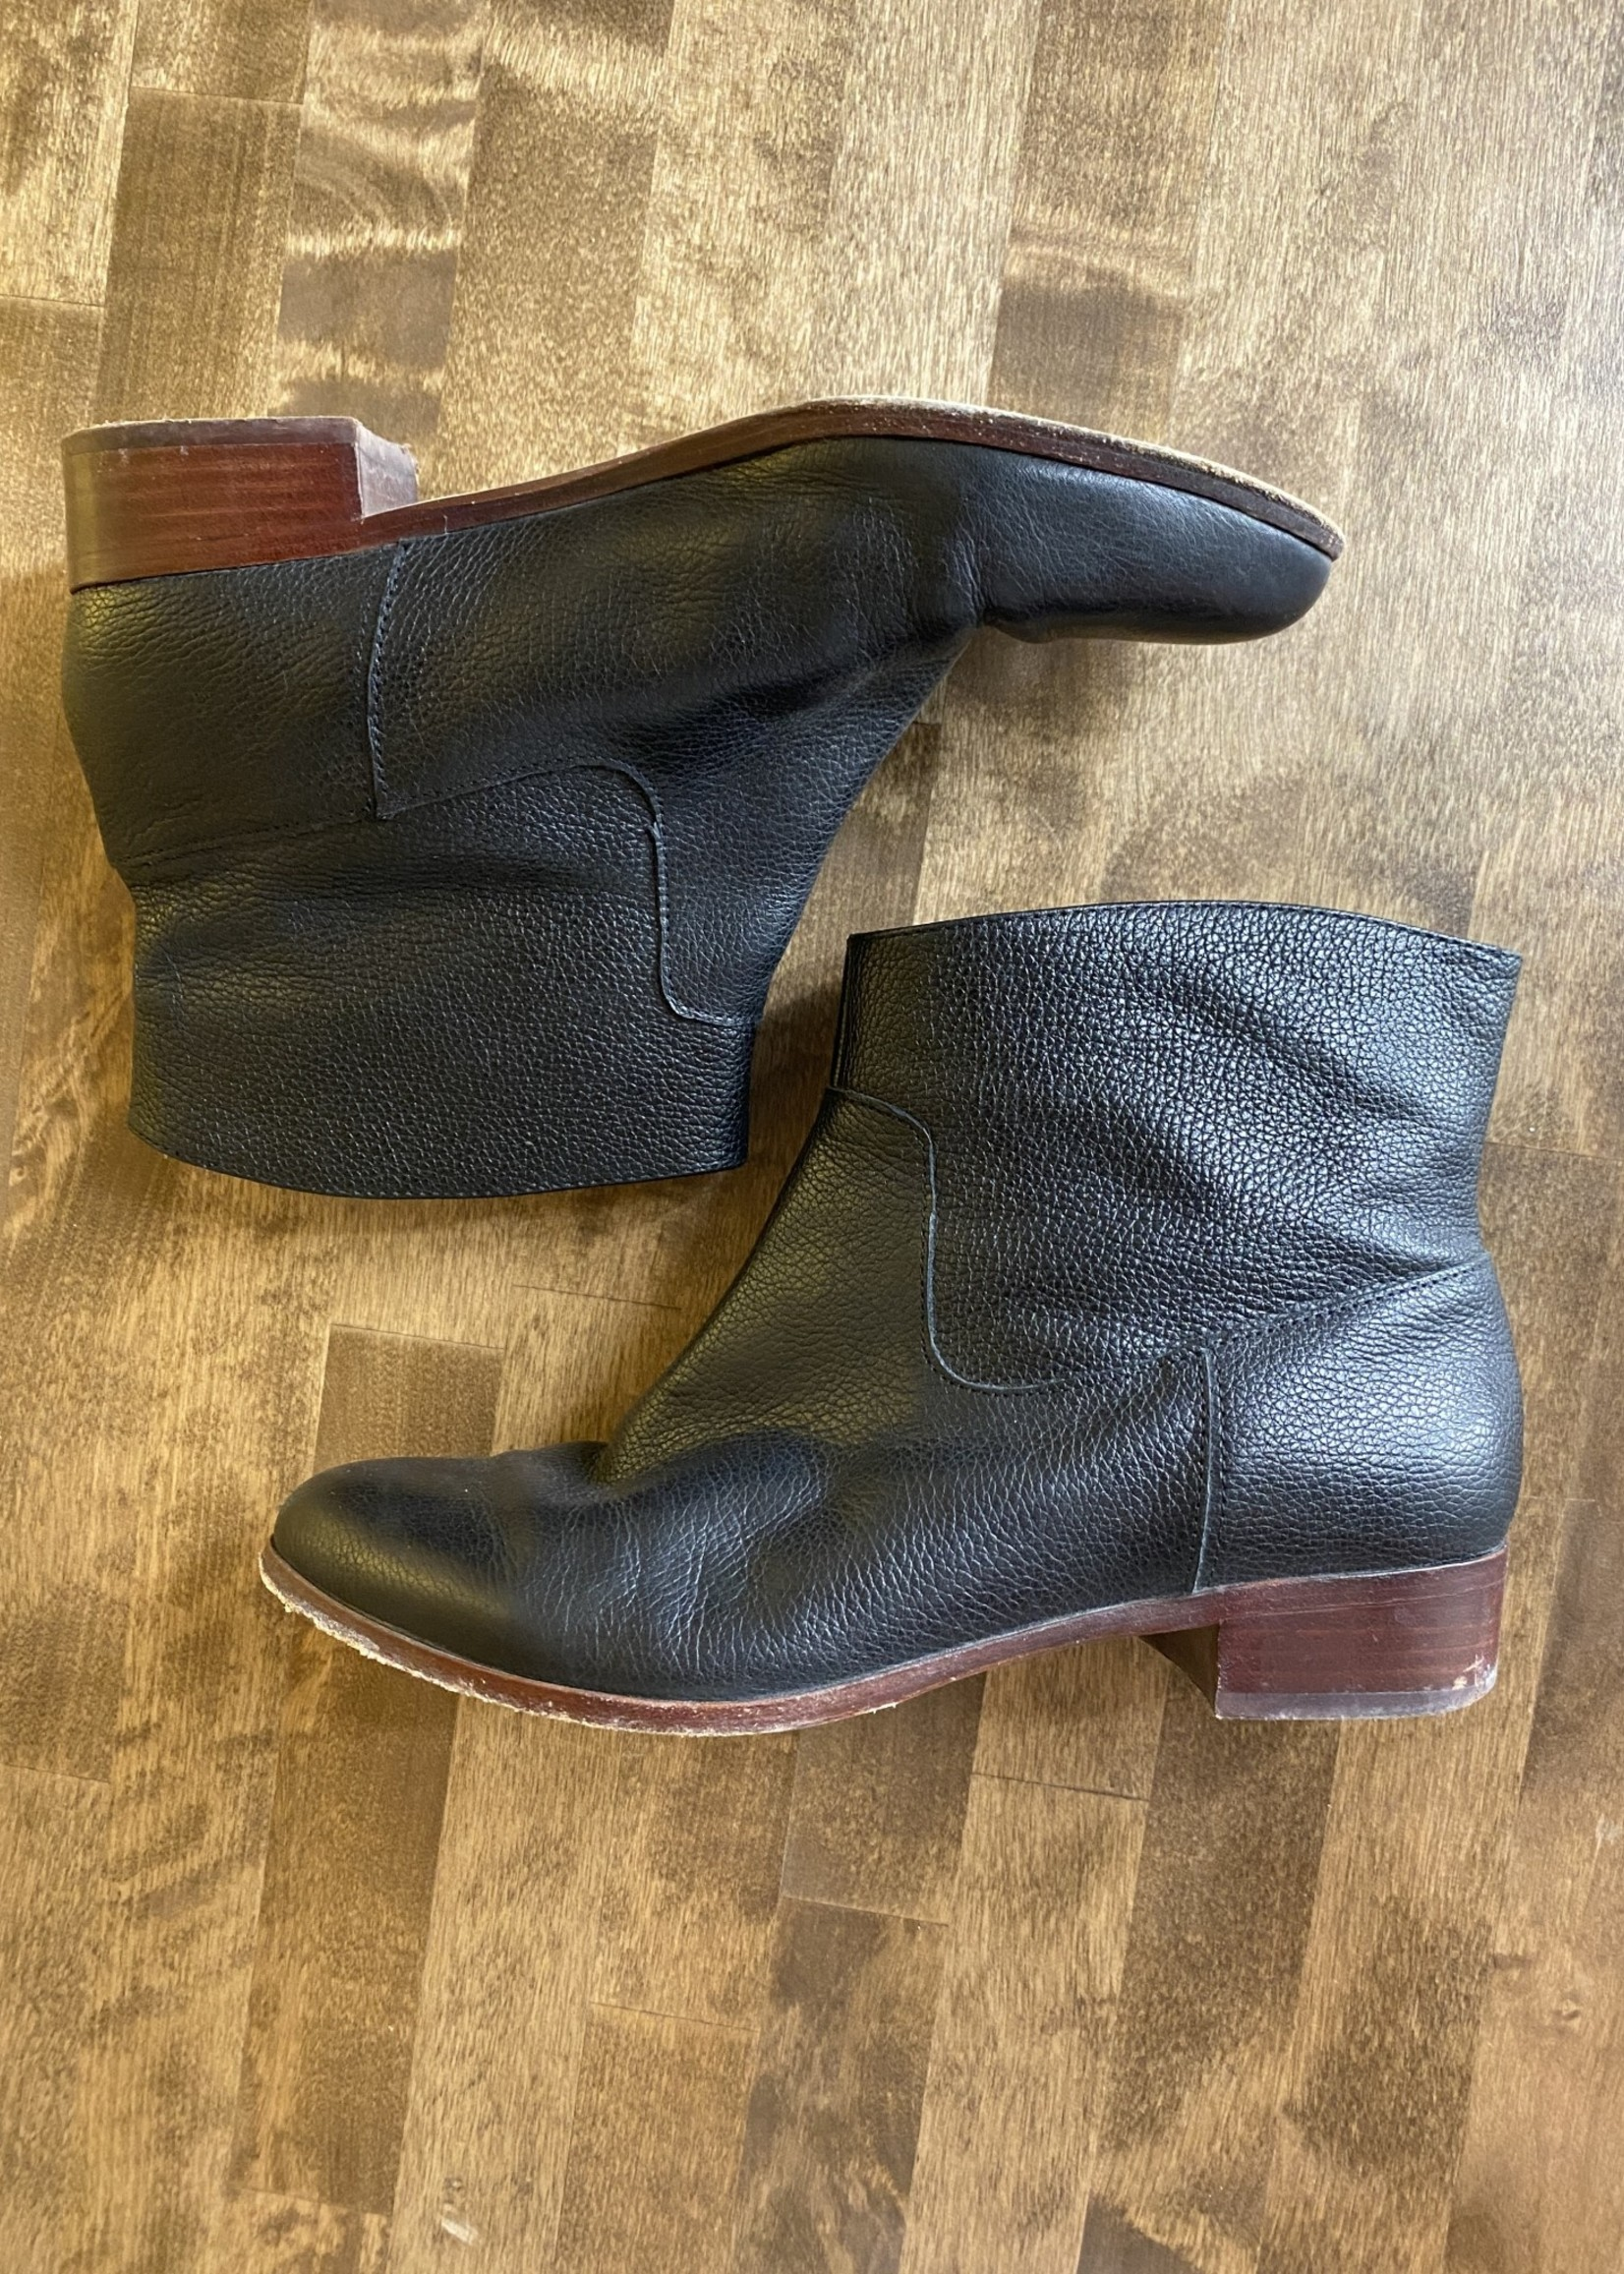 Kate Spade Black Leather Short Boots 7.5